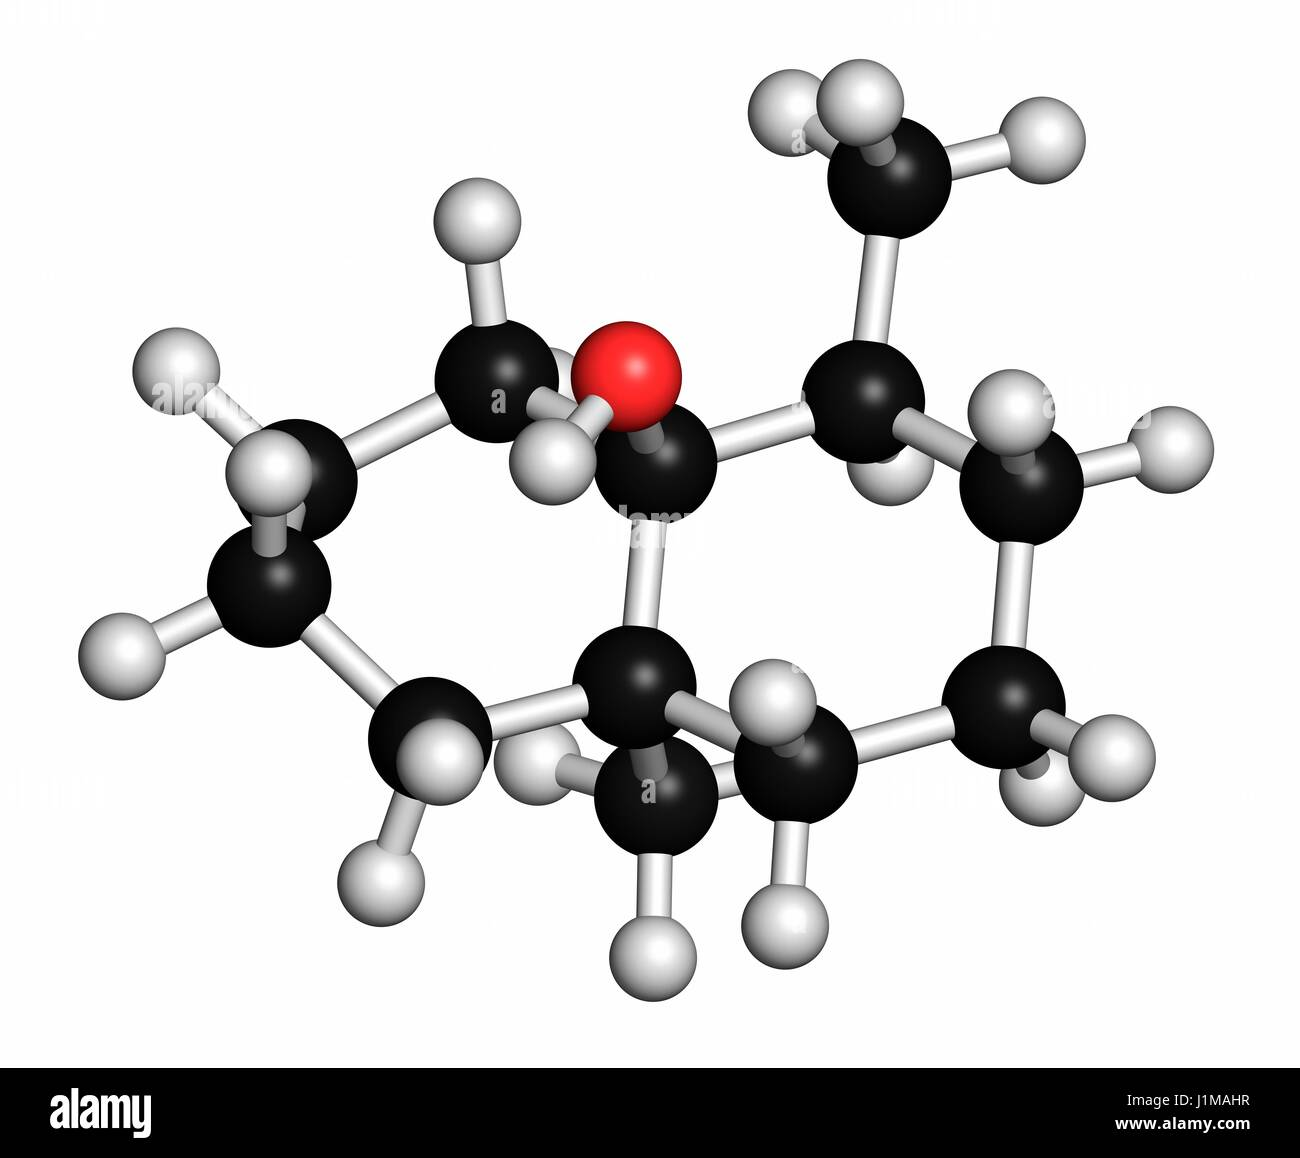 Geosmin earthy flavour molecule. Responsible for the typical taste of beetroot. Atoms are represented as spheres - Stock Image